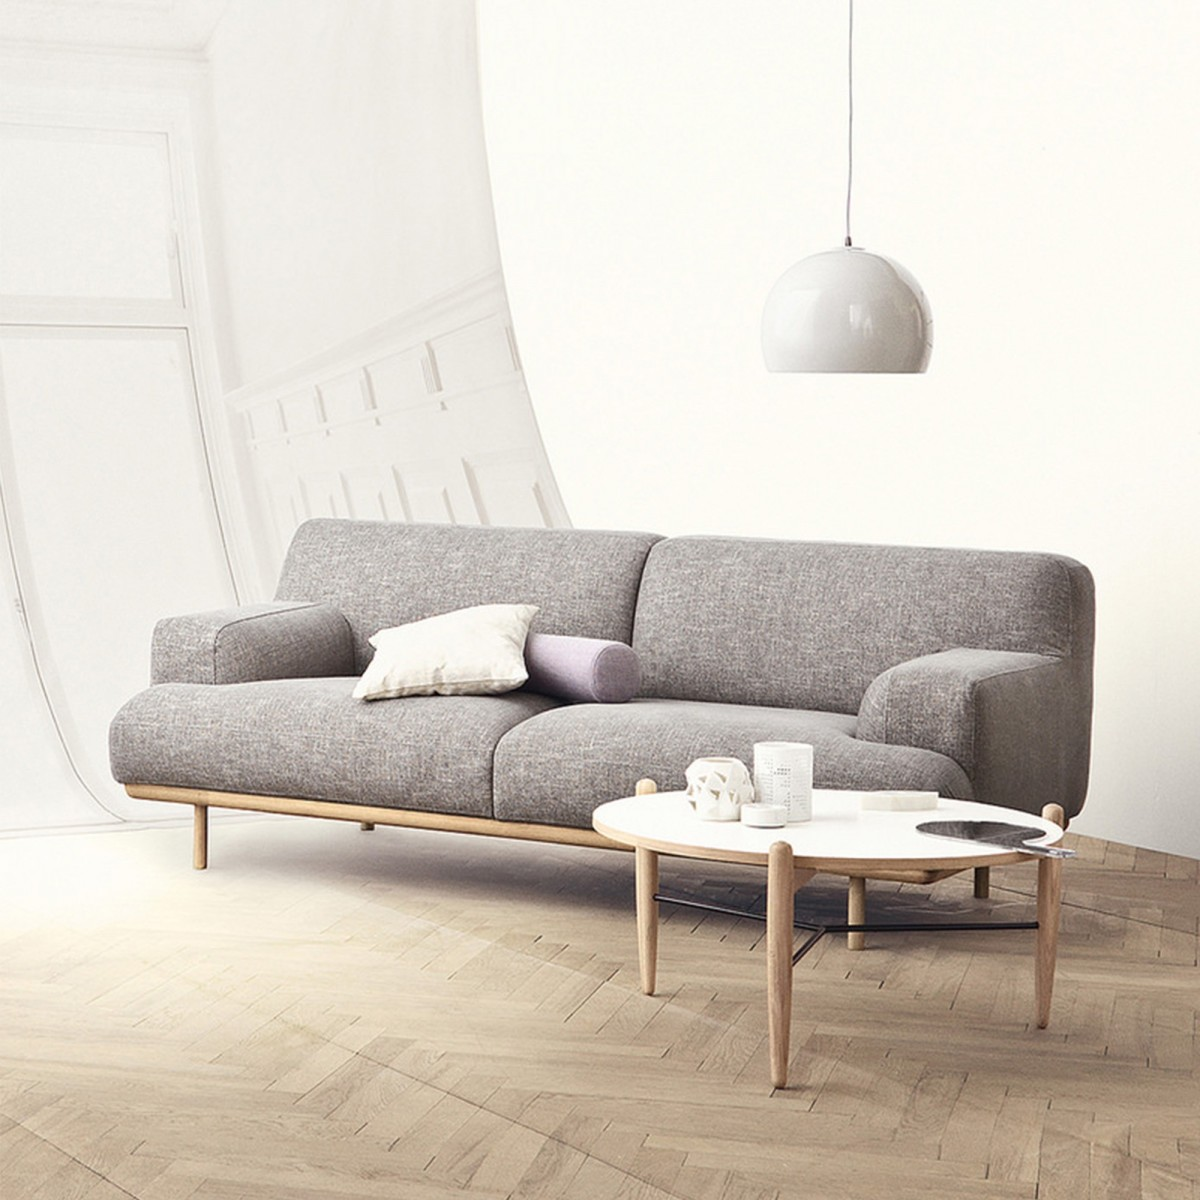 MADISON Sofa 2 Seats 12 BOLIA